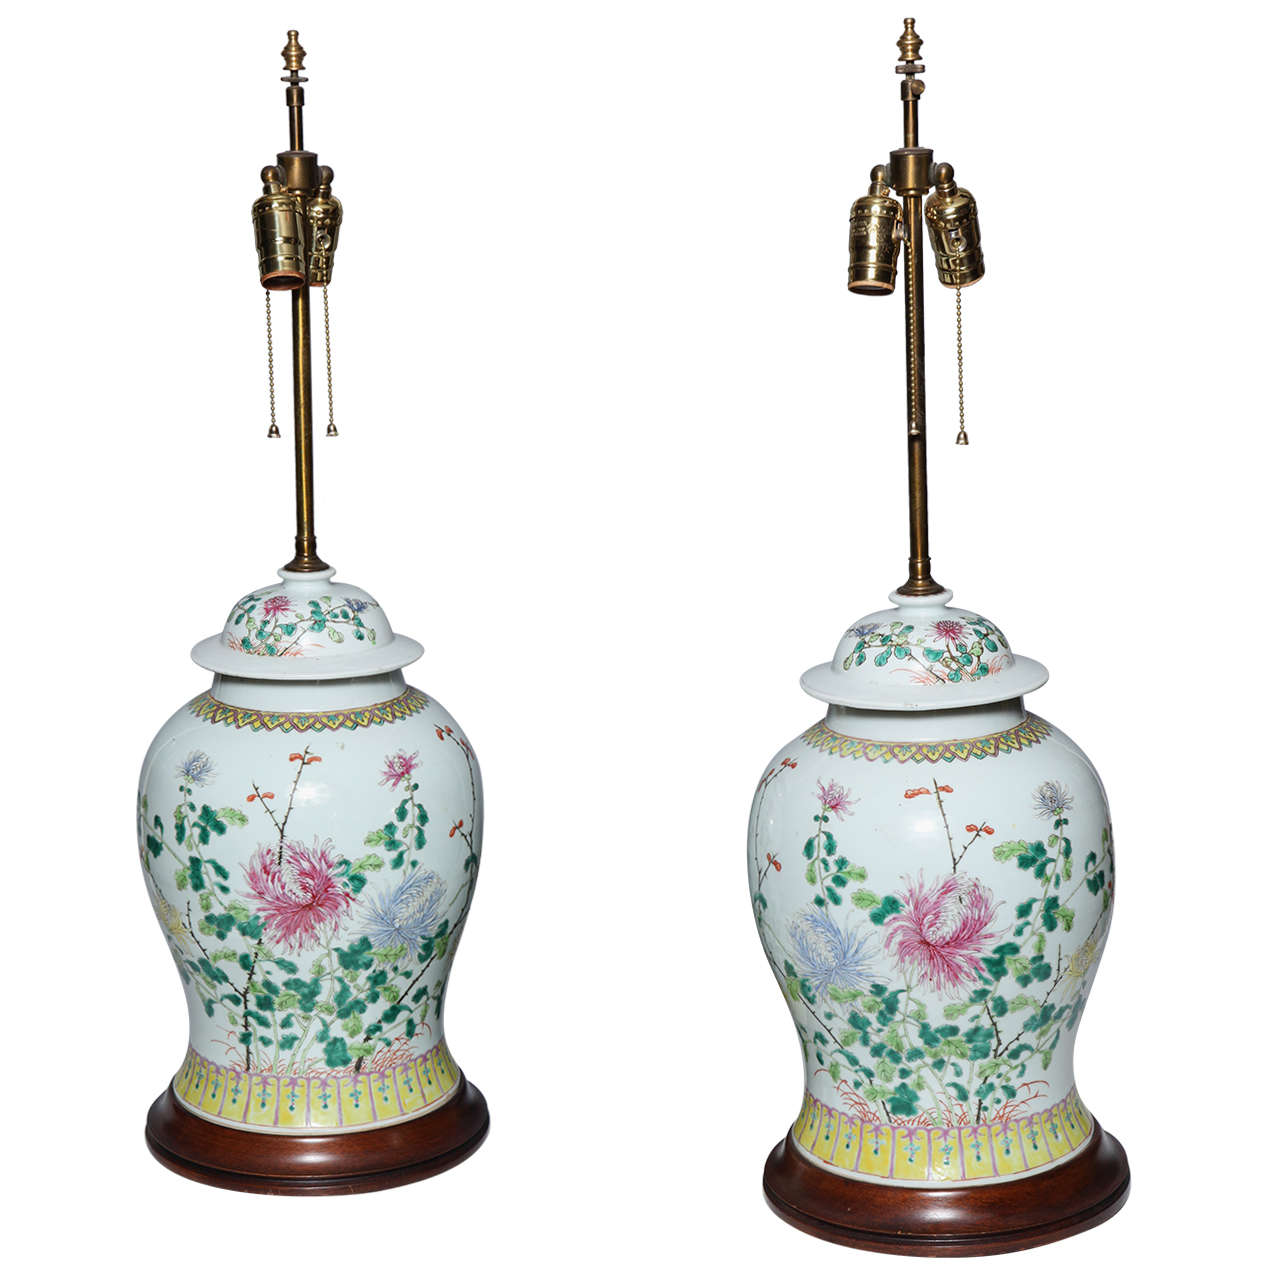 Pair of 19th Century Chinese Porcelain Ginger Jars Converted into